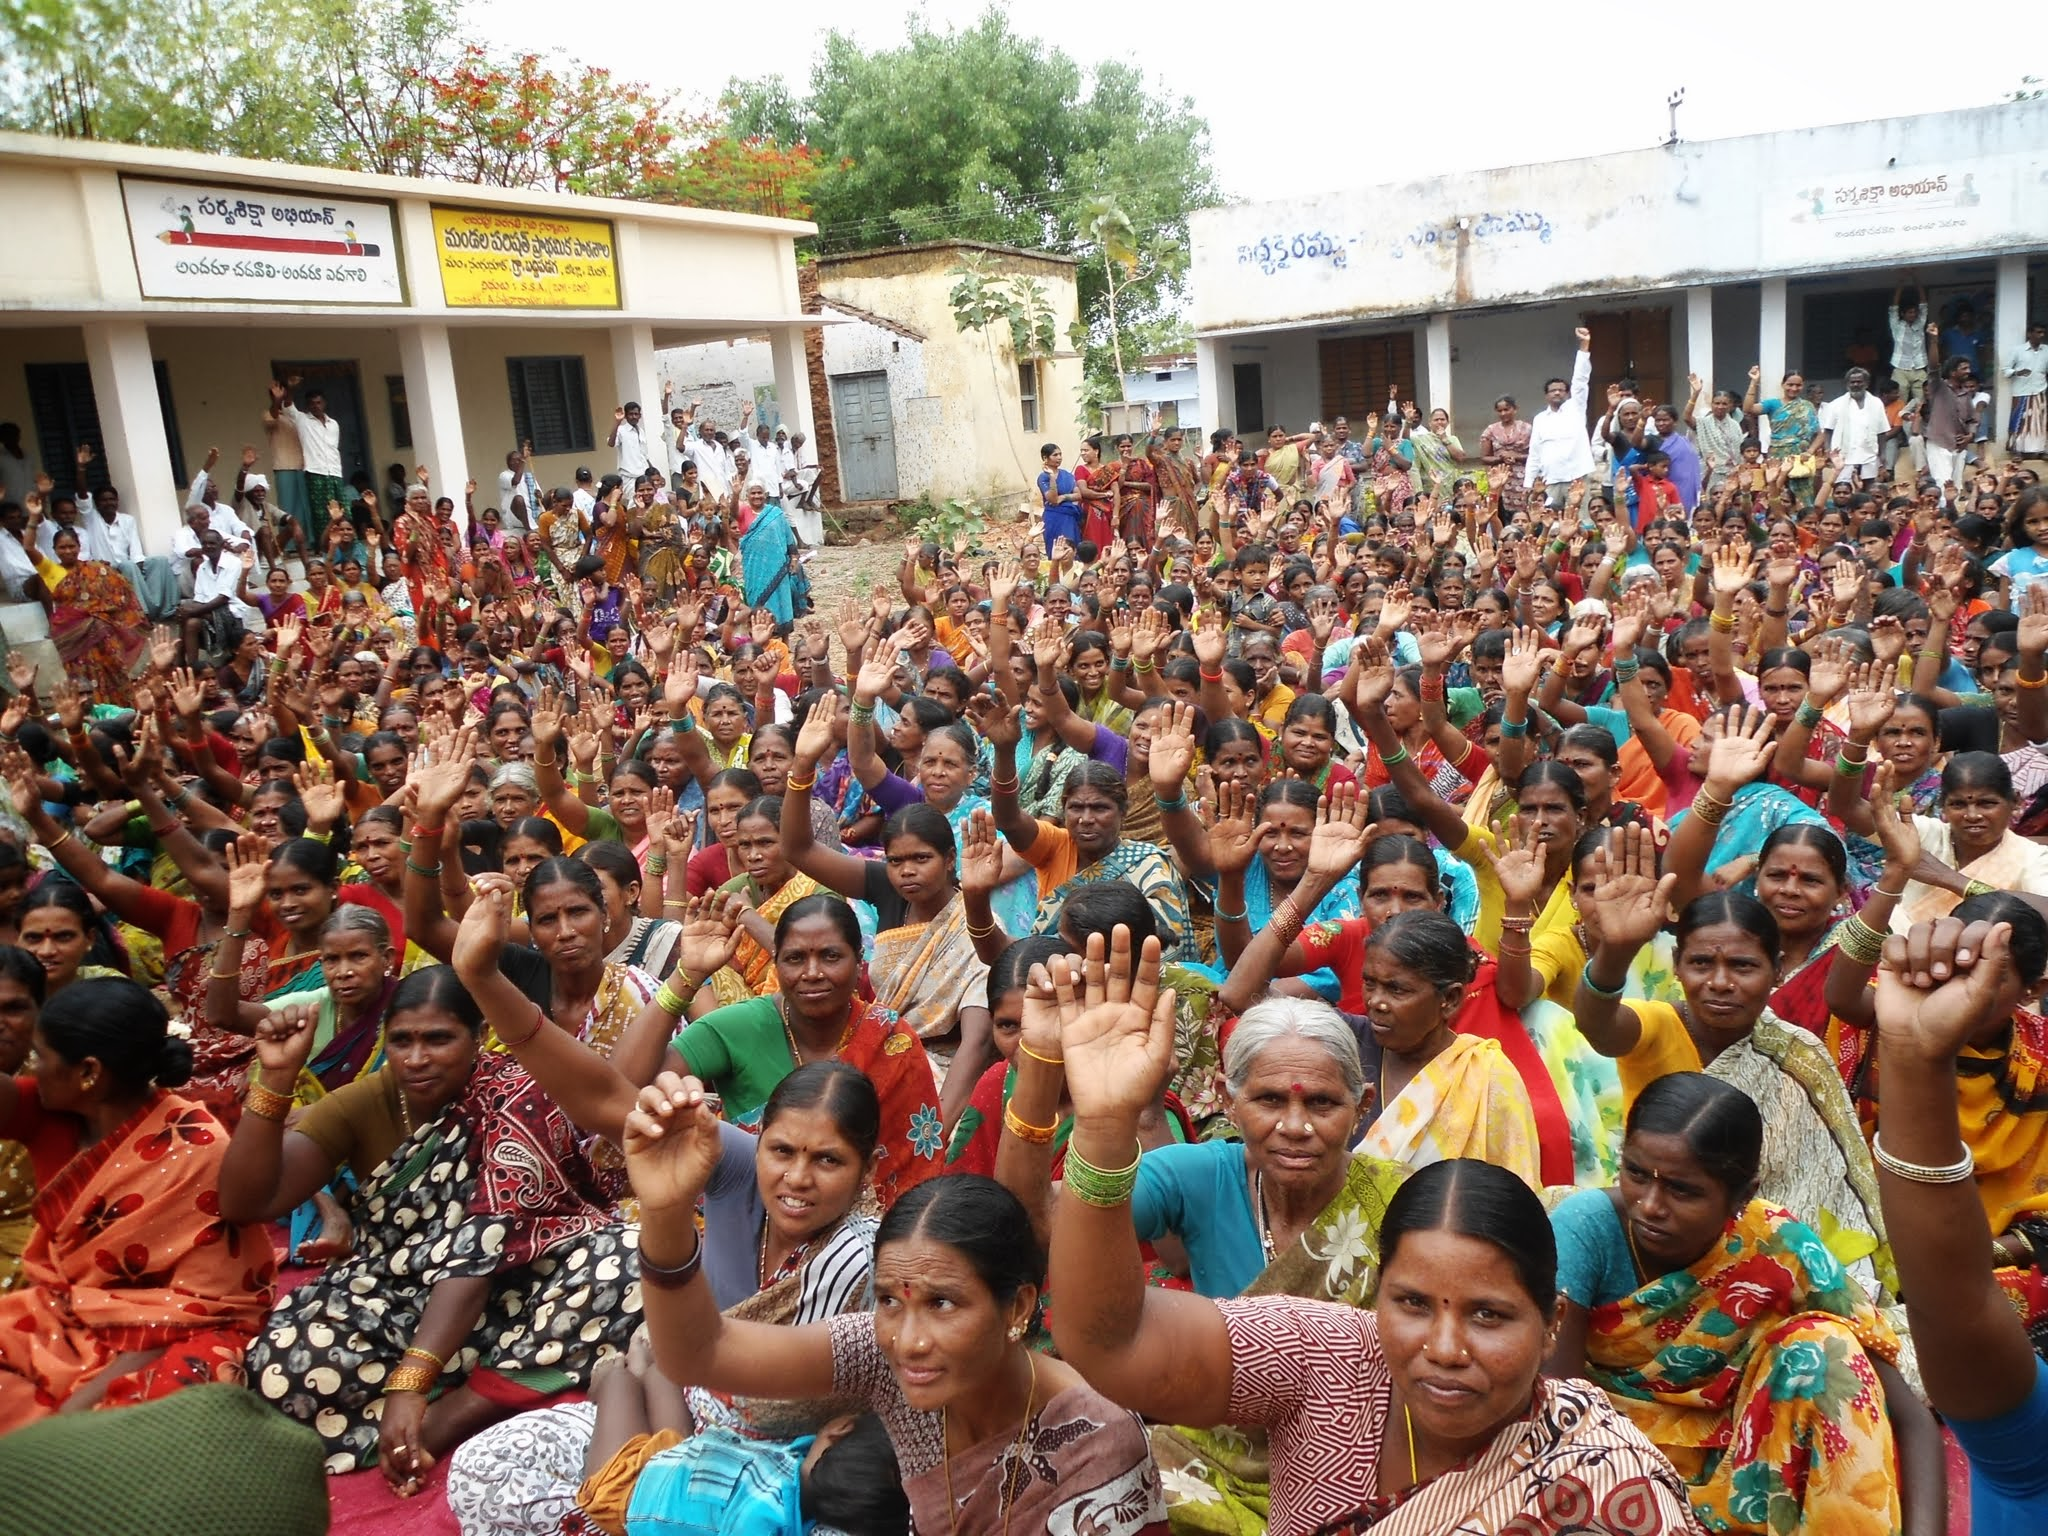 2013-BV-Baddipadaga-Community meeting.jpg